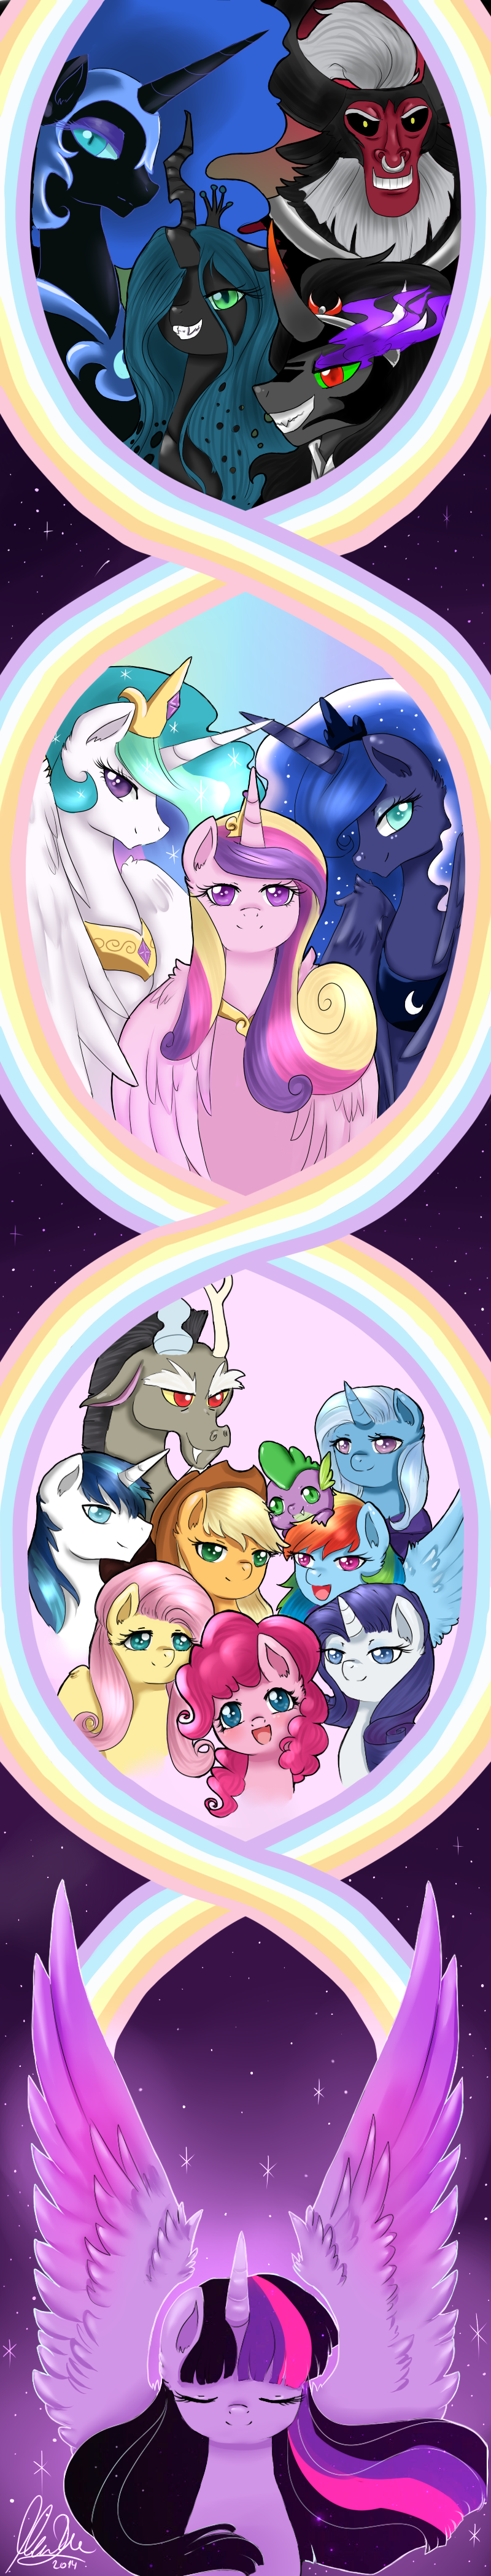 Image tirek throws twilight towards the mountain s4e26 png my - Rainbow Pie On